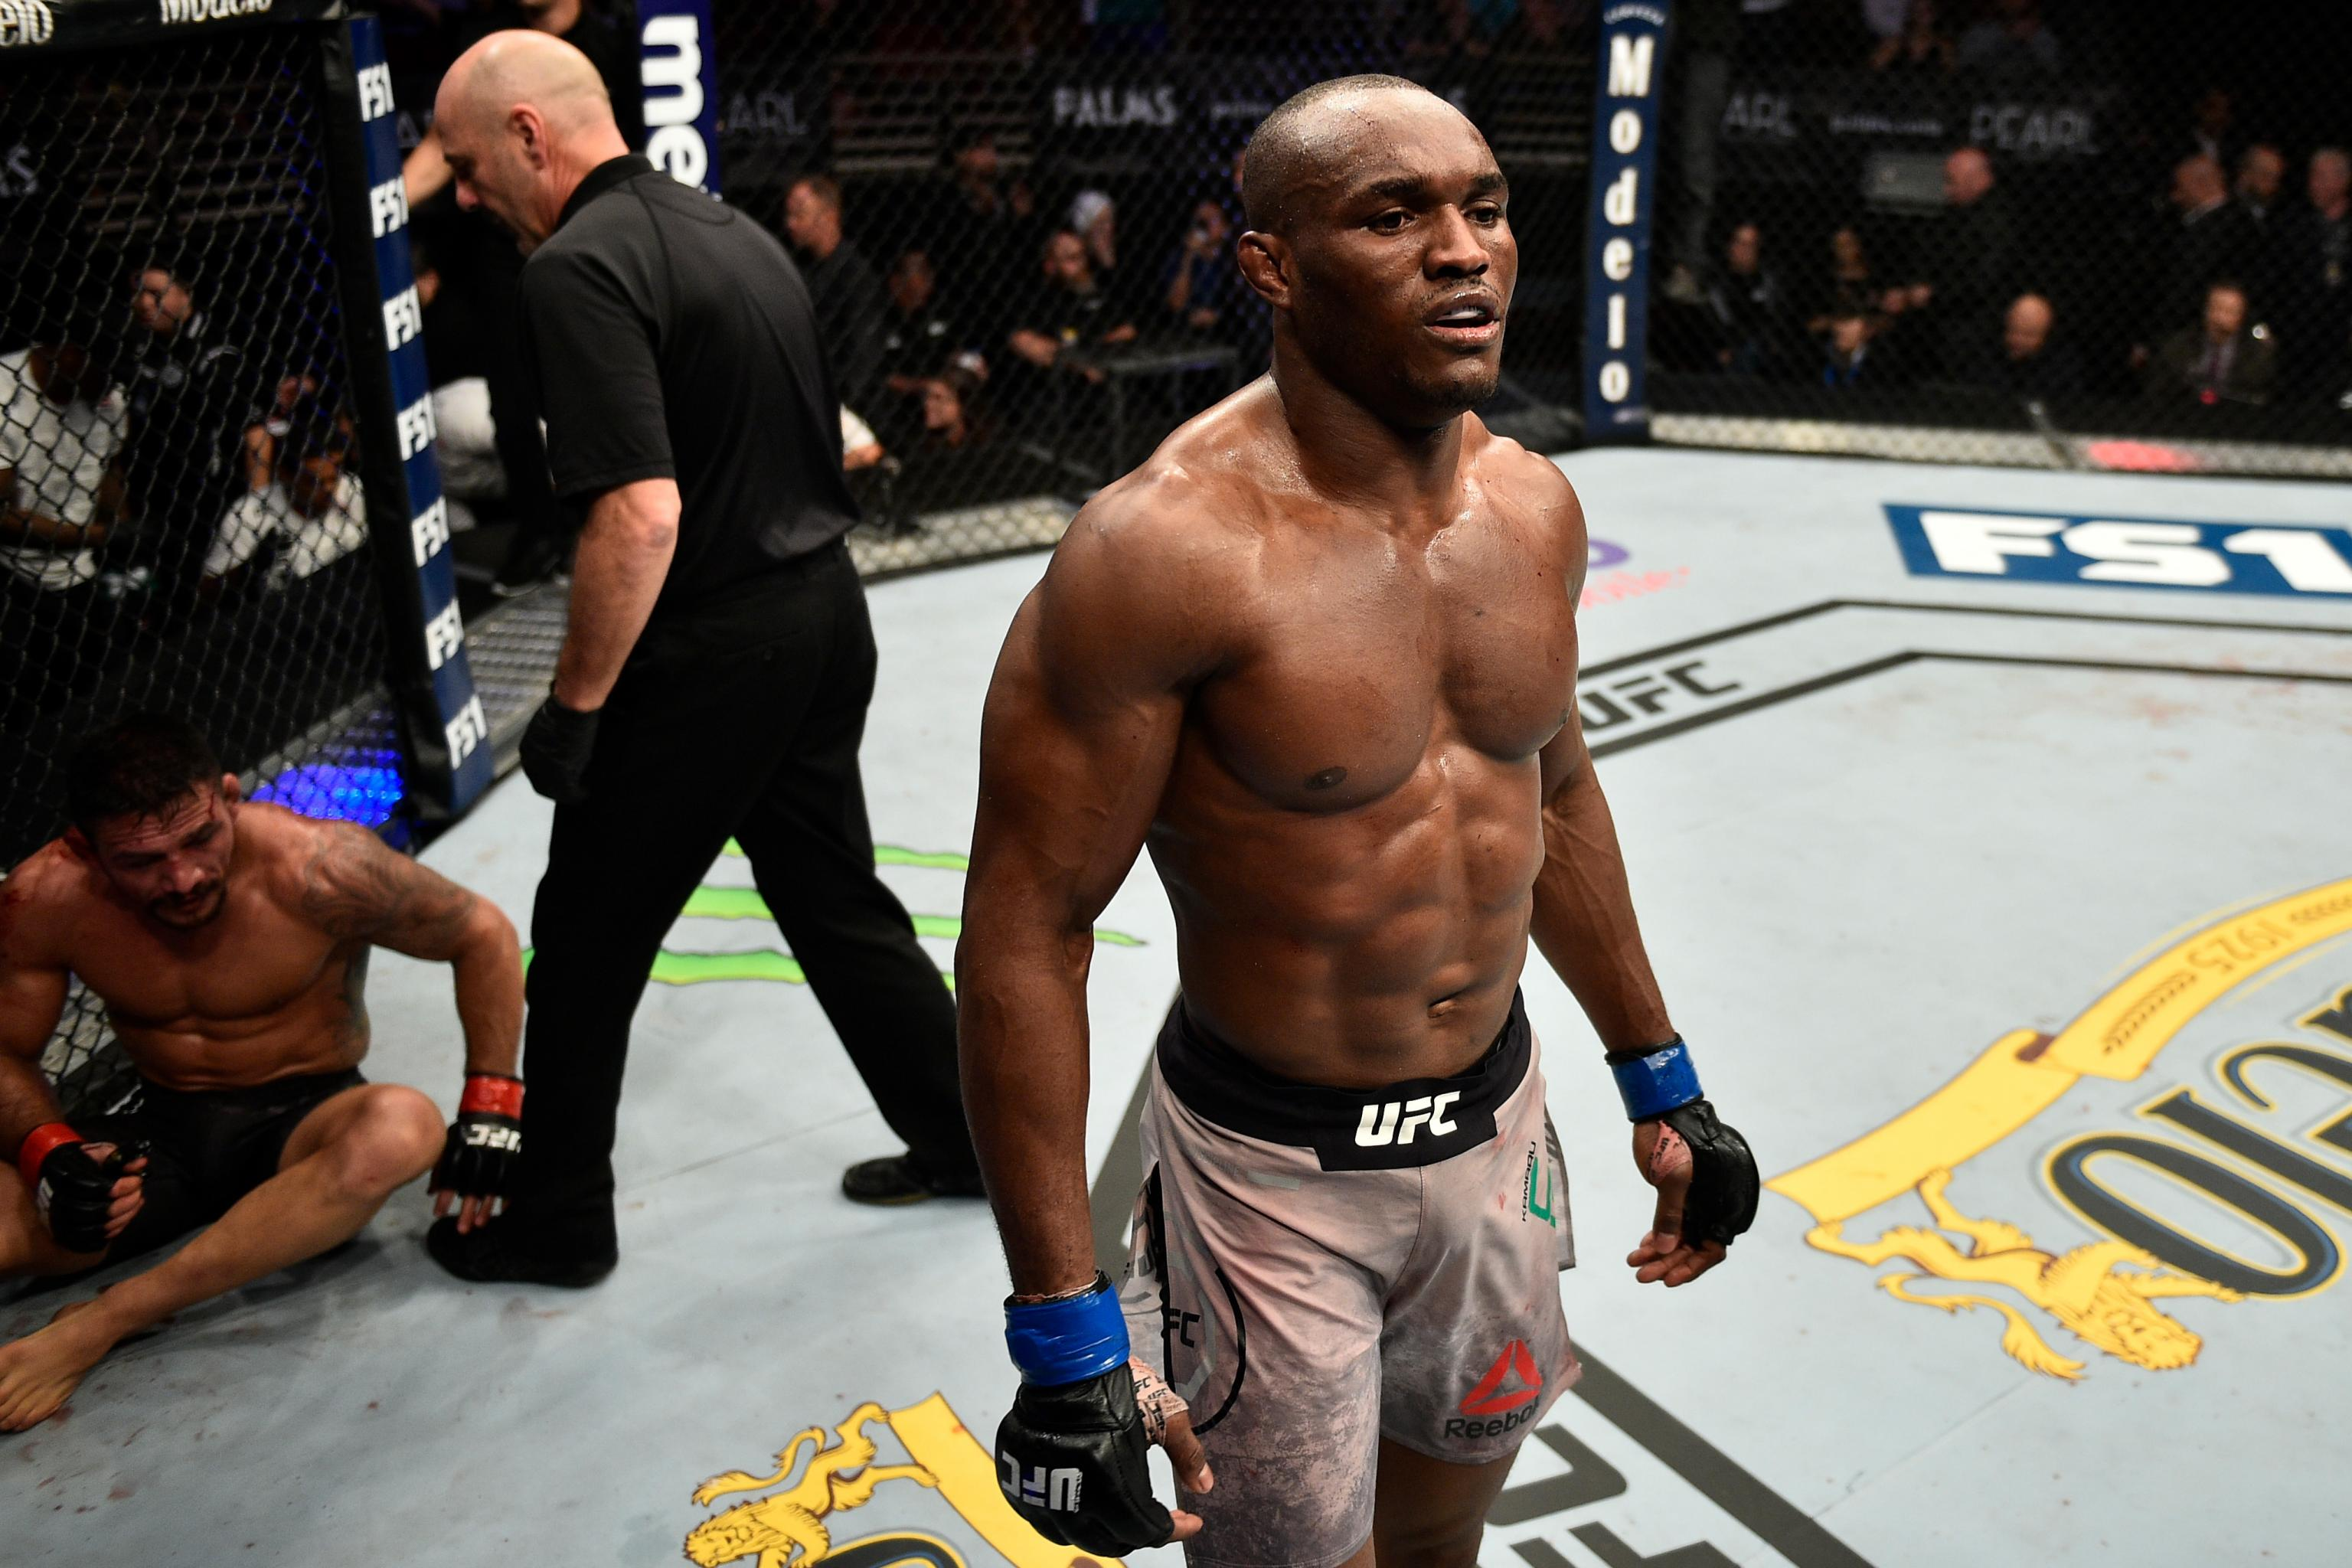 Dana White: Kamaru Usman Promised Welterweight Title Shot at UFC 235 | Bleacher Report | Latest News, Videos and Highlights